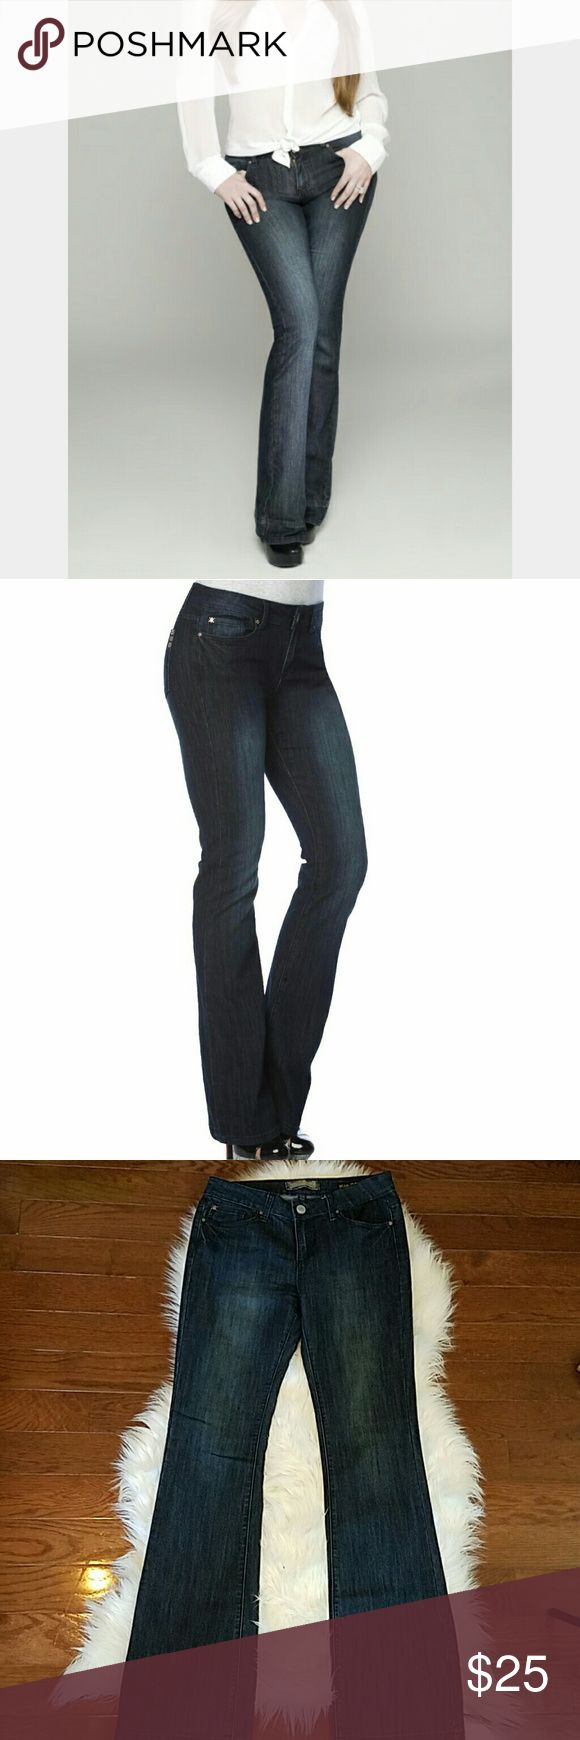 "KARDASHIAN KOLLECTION The Khloe Curvy Bootcut KARDASHIAN KOLLECTION The Khloe Curvy Bootcut Jeans. Excellent condition jeans with some stretch top flatter a curvy figure.  66% cotton,  31% polyester,  1% elastane,  2% other  Size 8, Inseam 33"" , Waist 15 1/2"", Rise 9"" Kardashian Kollection Jeans Boot Cut"